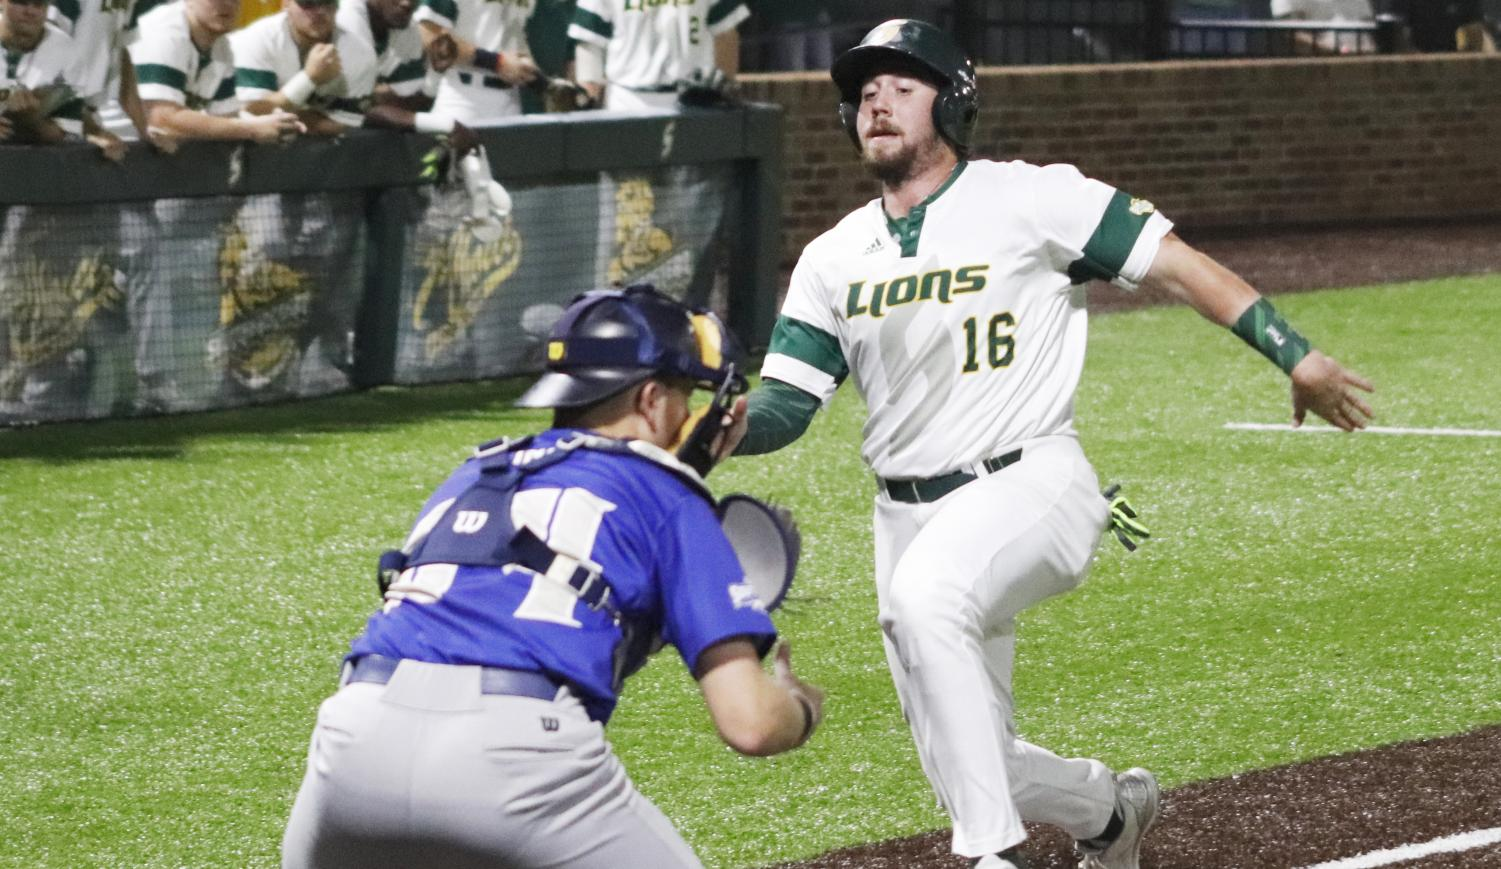 Kyle Schimpf, a senior infielder, runs to home plate to score against the University of New Orleans. Athletes may find inspirations from a number of sources including professional athletes.